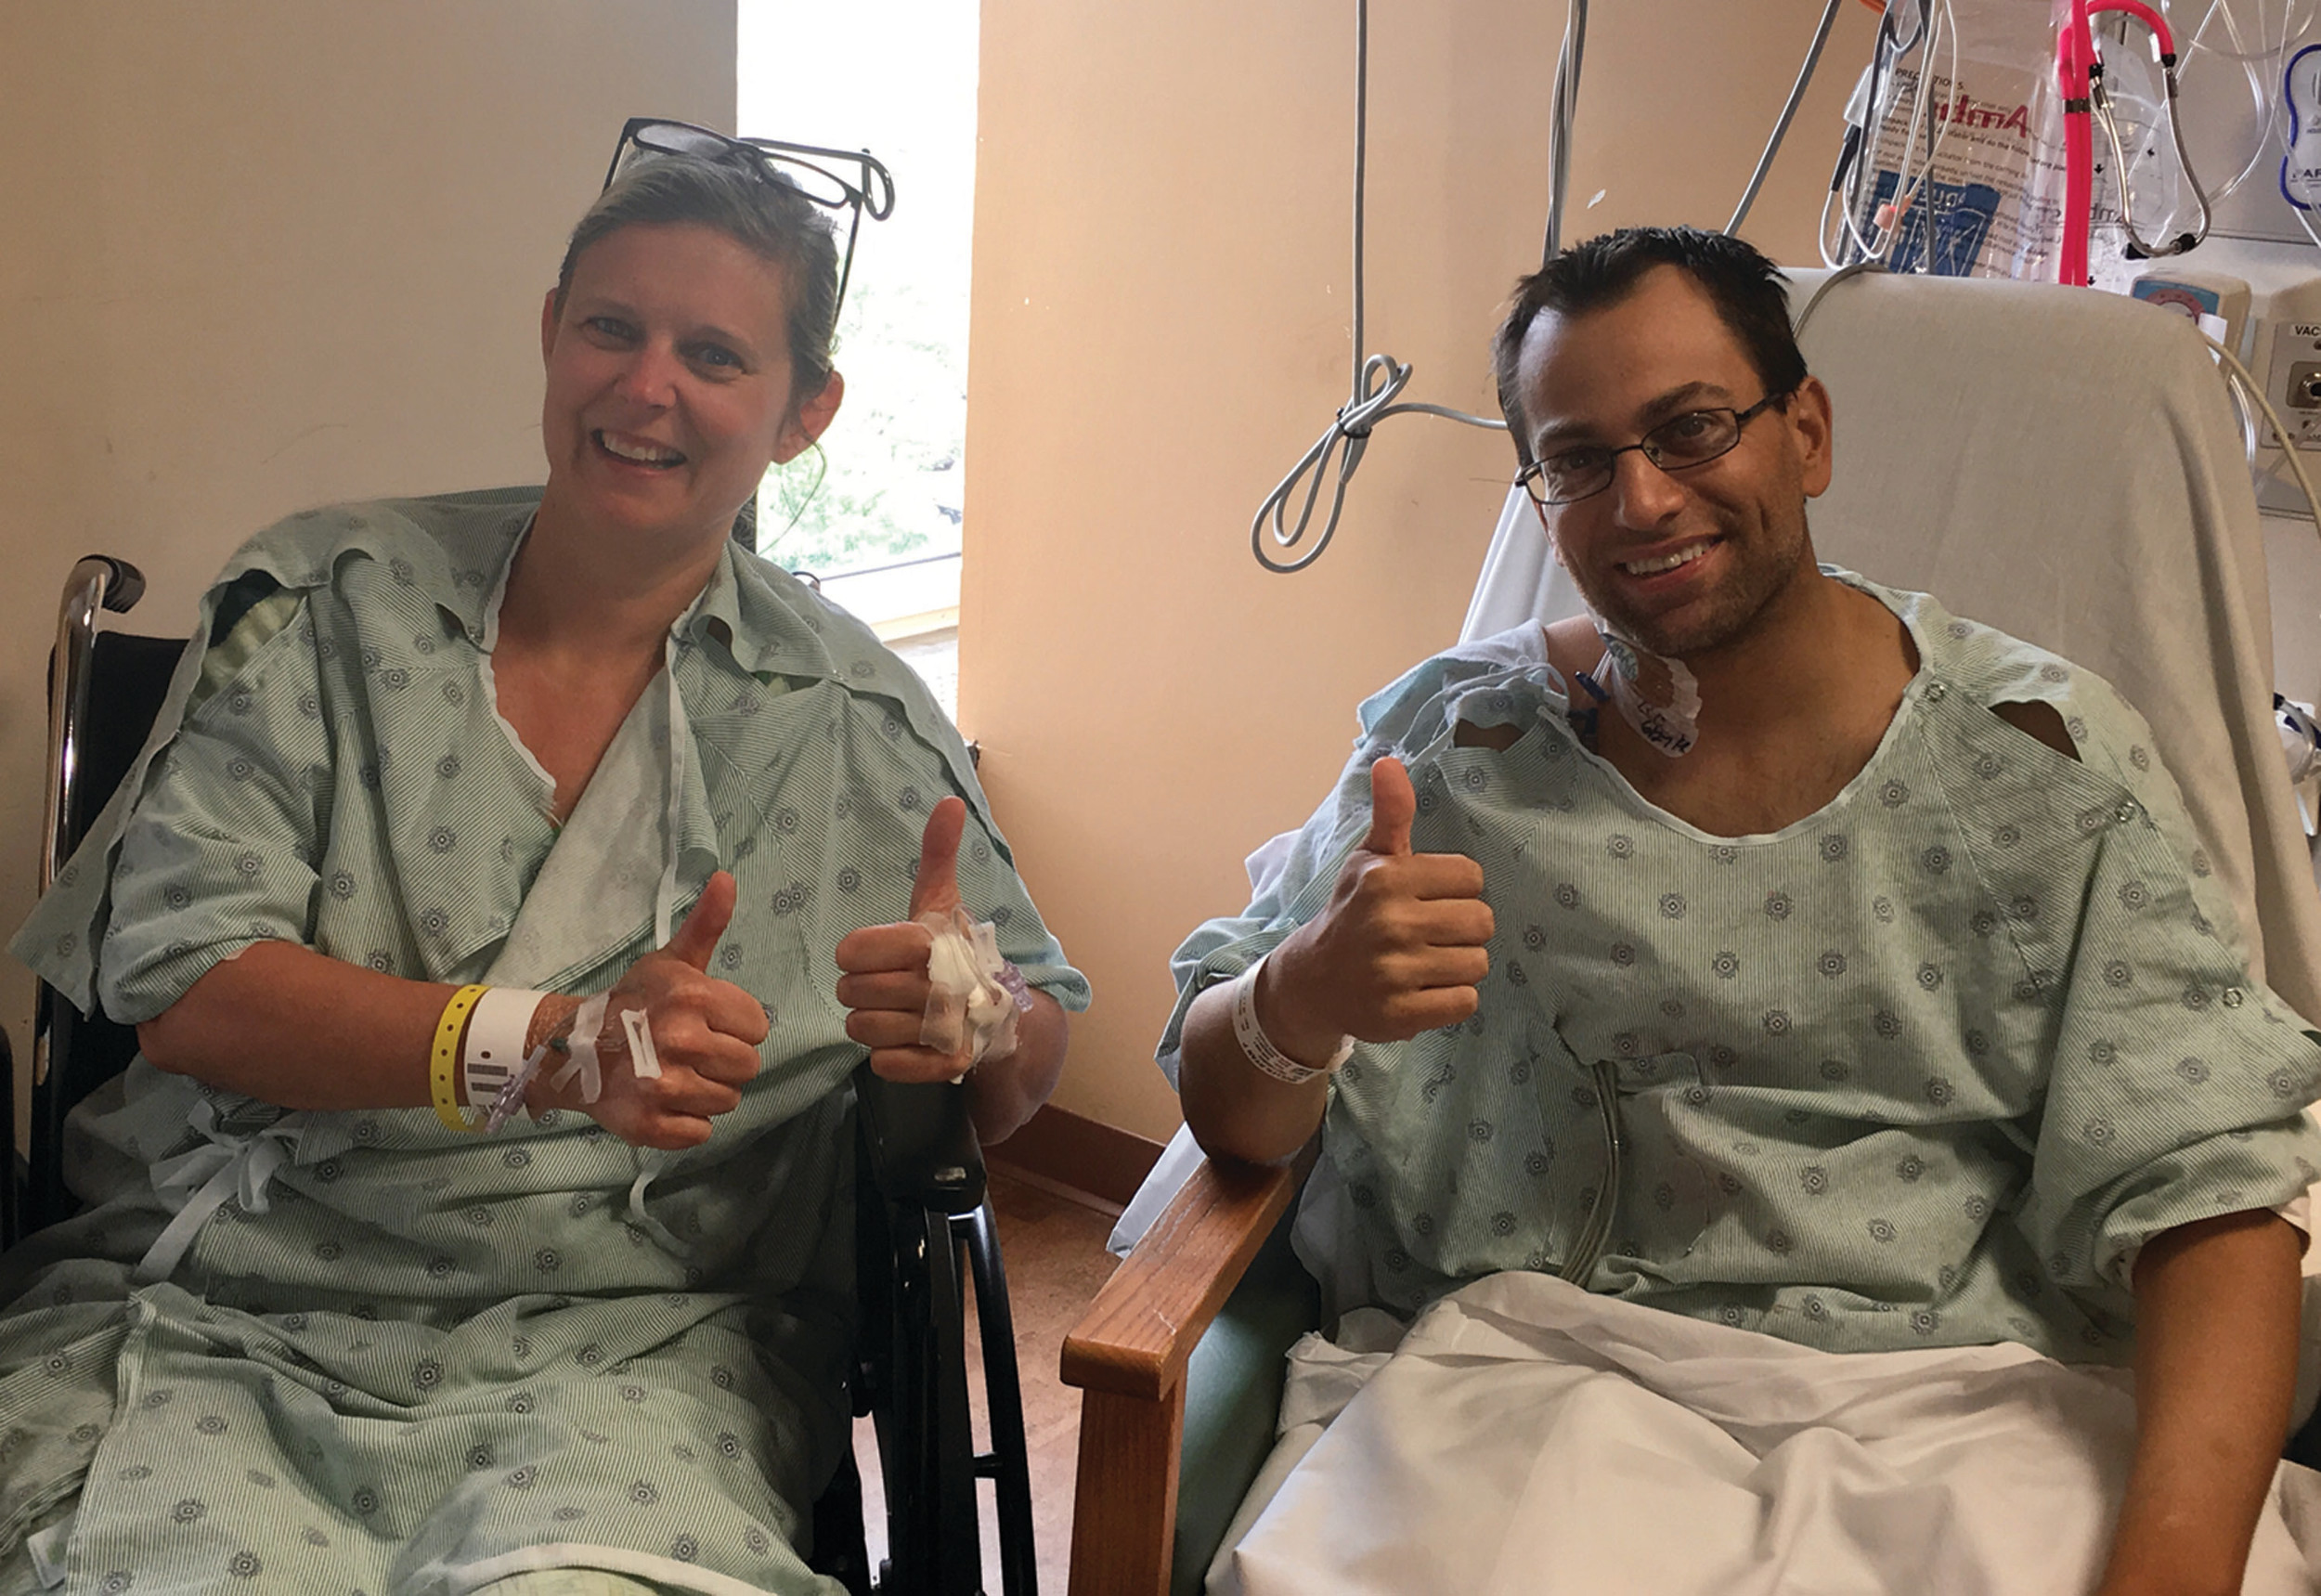 A PERFECT MATCH: Michelle Sheehan-Pimental and Ryan Mullen meet for the first time in the recovery room at Rhode Island Hospital after their successful transplant surgery.